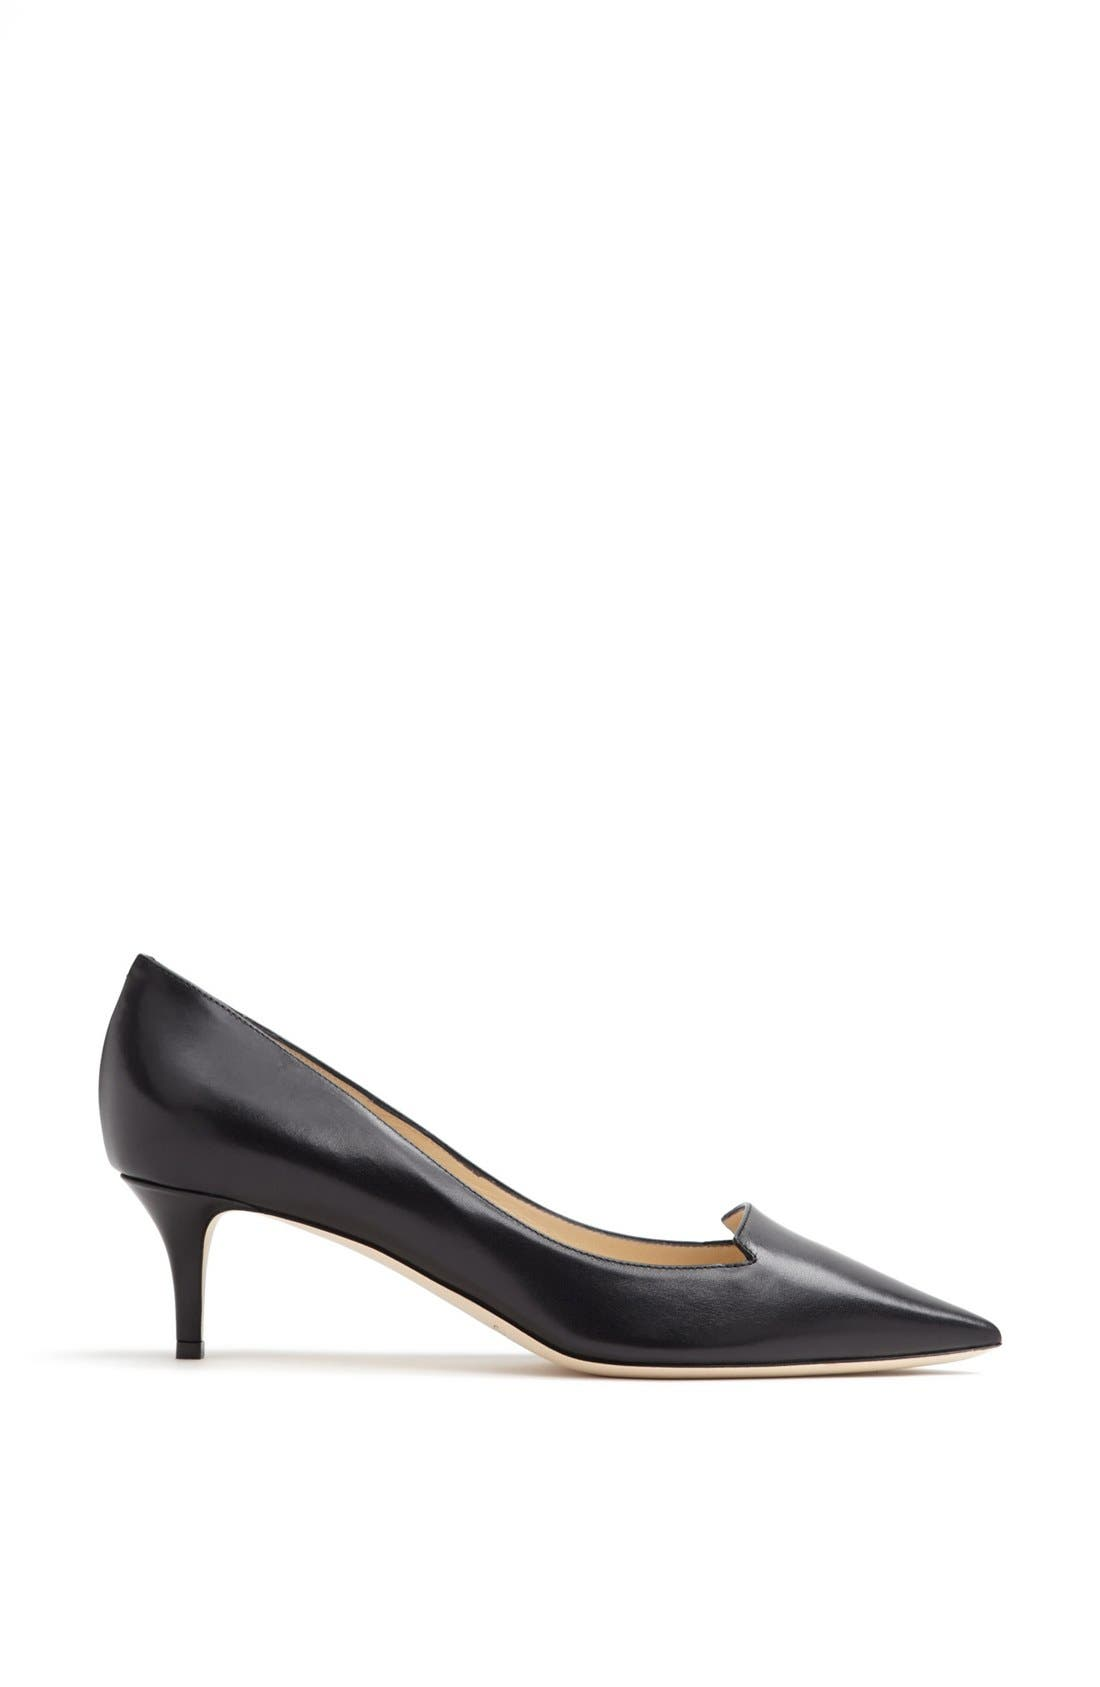 Alternate Image 2  - Jimmy Choo 'Allure' Pump (Women)